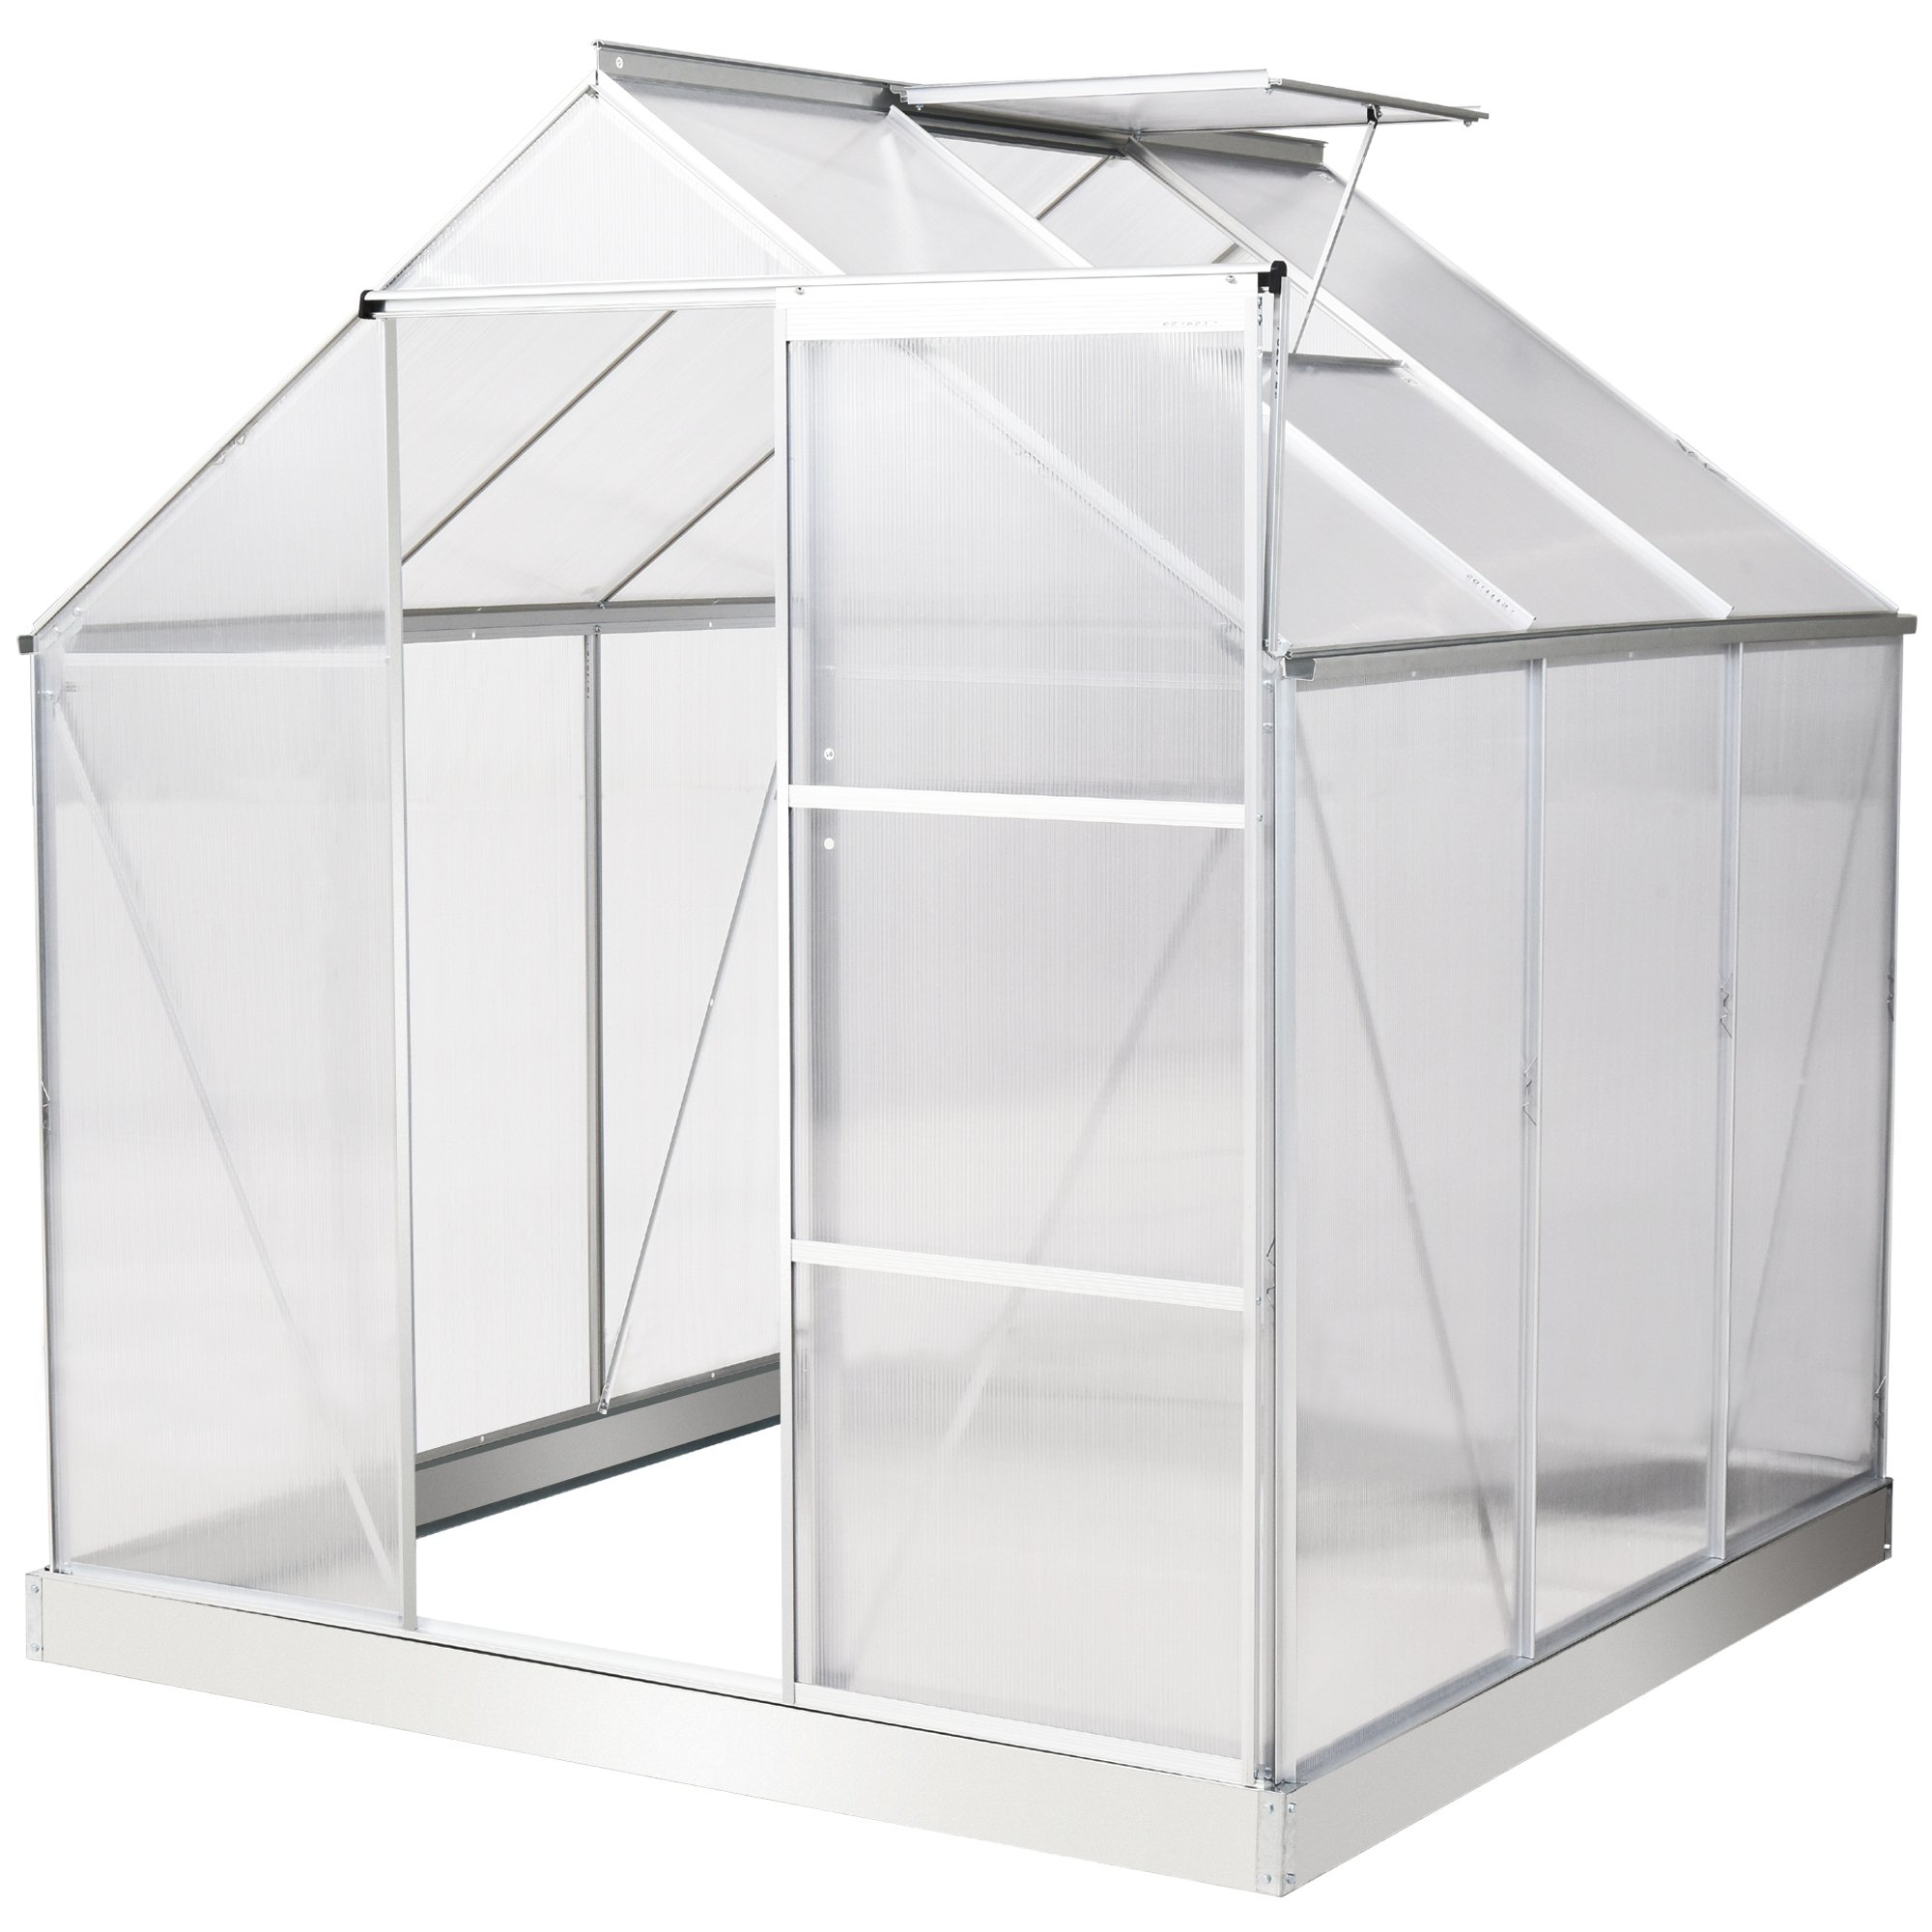 Outsunny 6x6ft Walk-In Polycarbonate Greenhouse w/ Window Clear